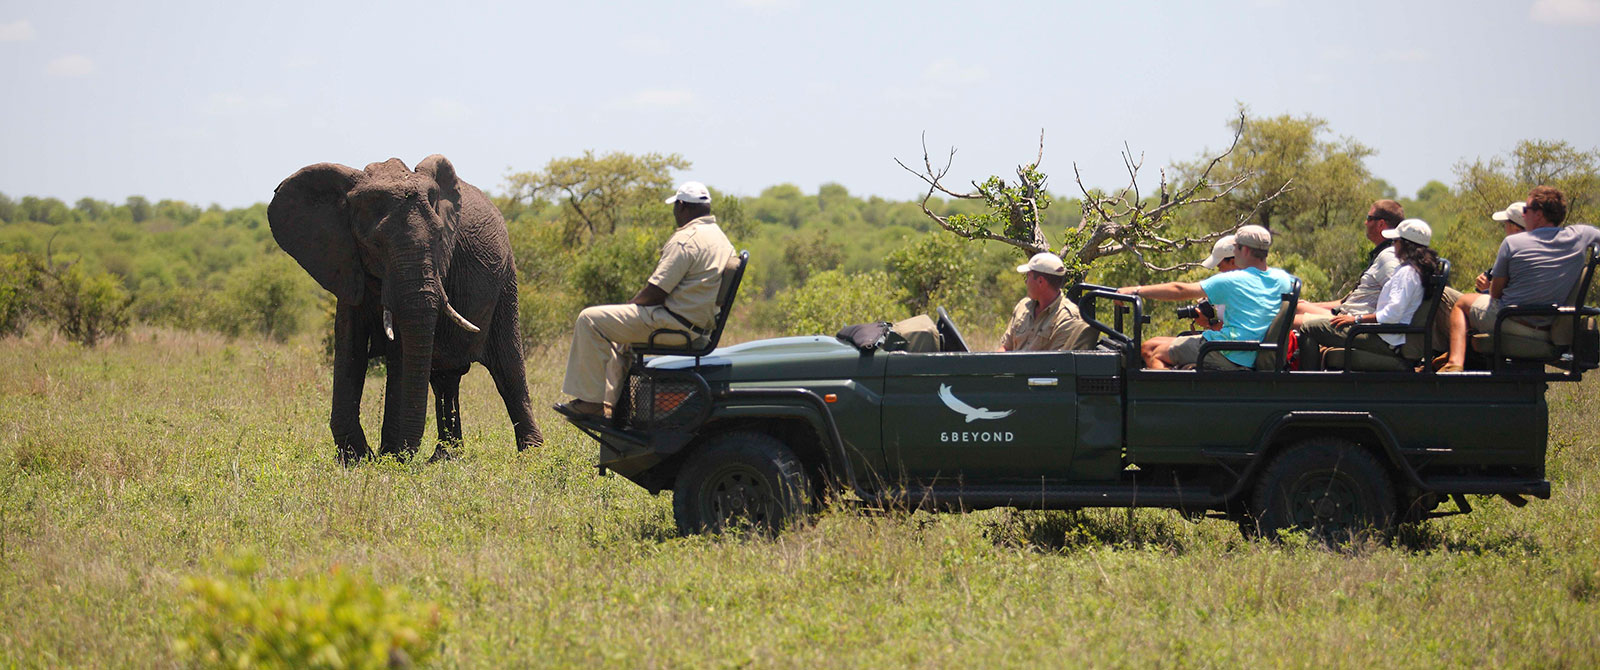 Big 5 Wildlife Safari - Luxury South African Safari: andBeyond Phinda and Sabi Sands